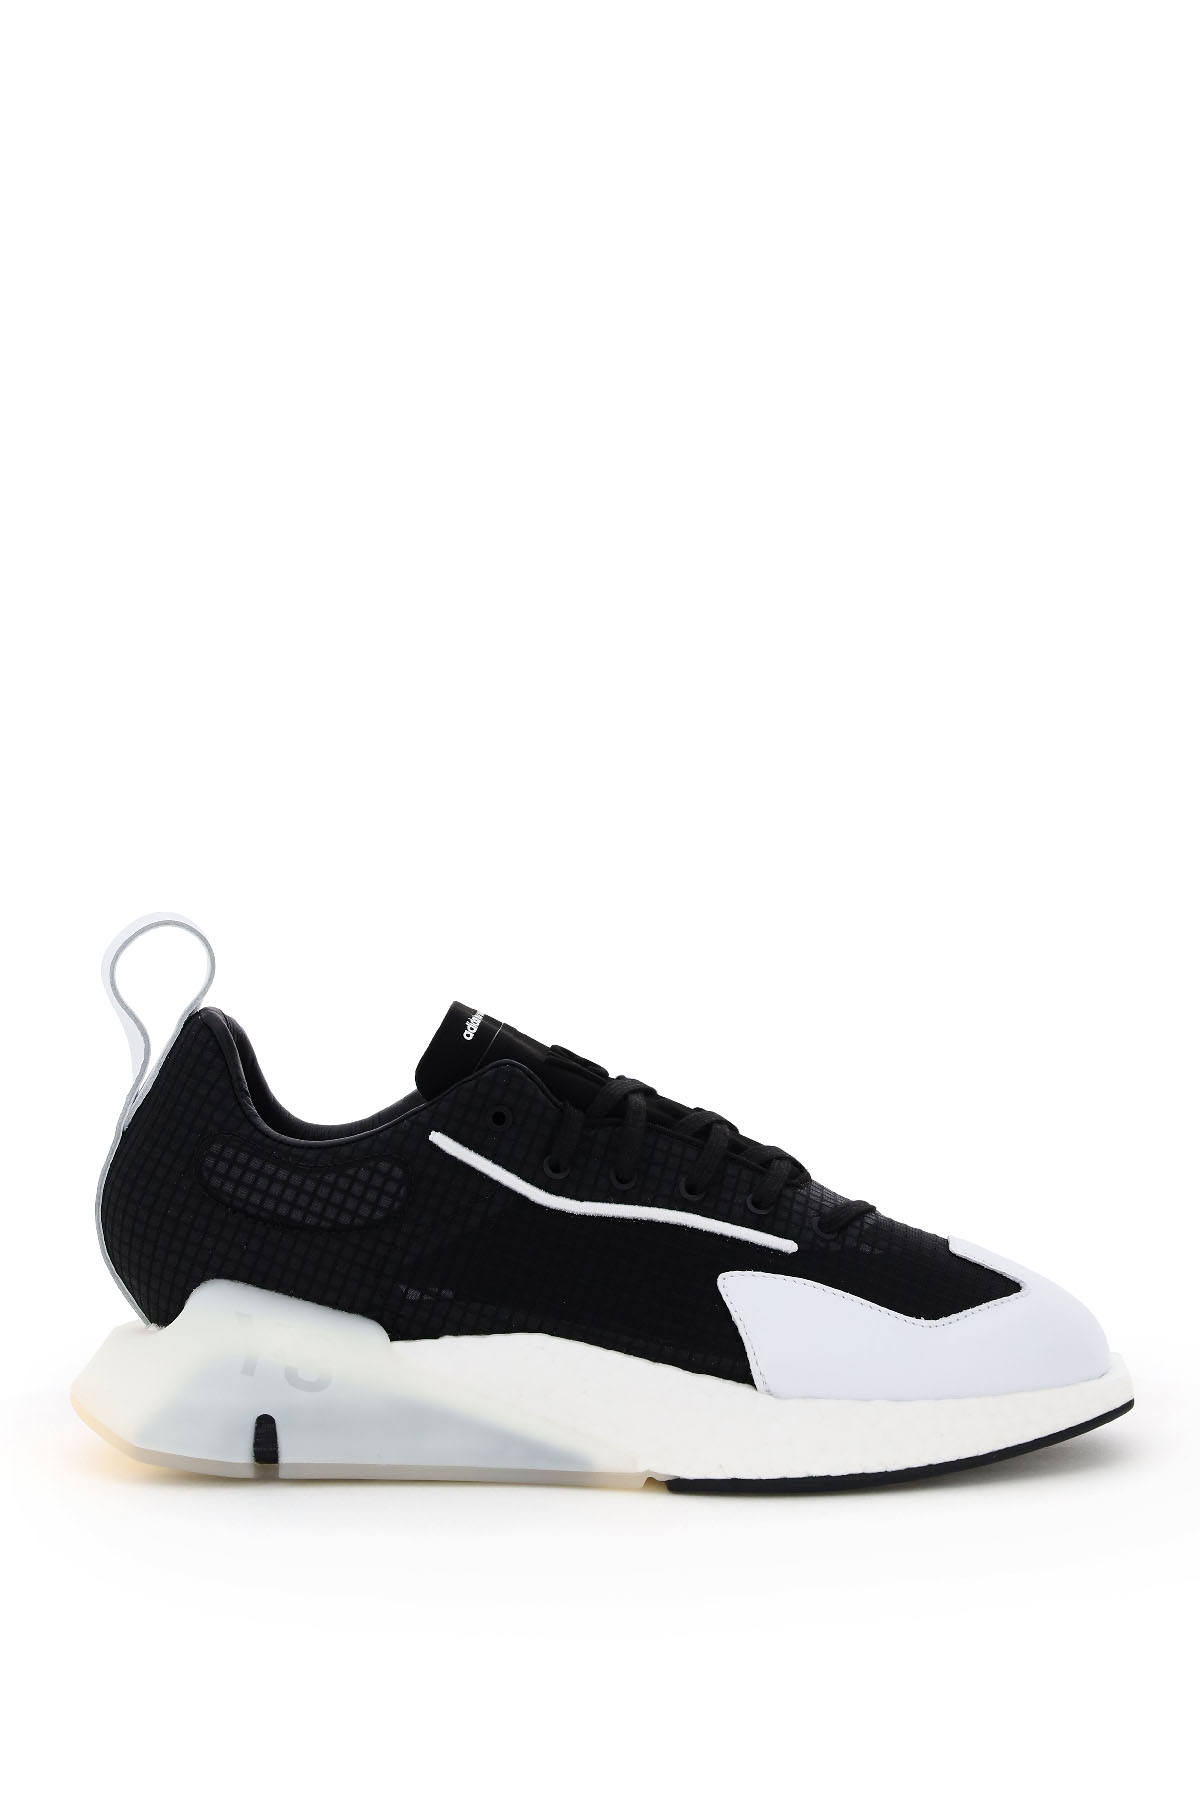 Y-3 Y-3 ORISAN SNEAKERS 11 Black, White Technical, Leather